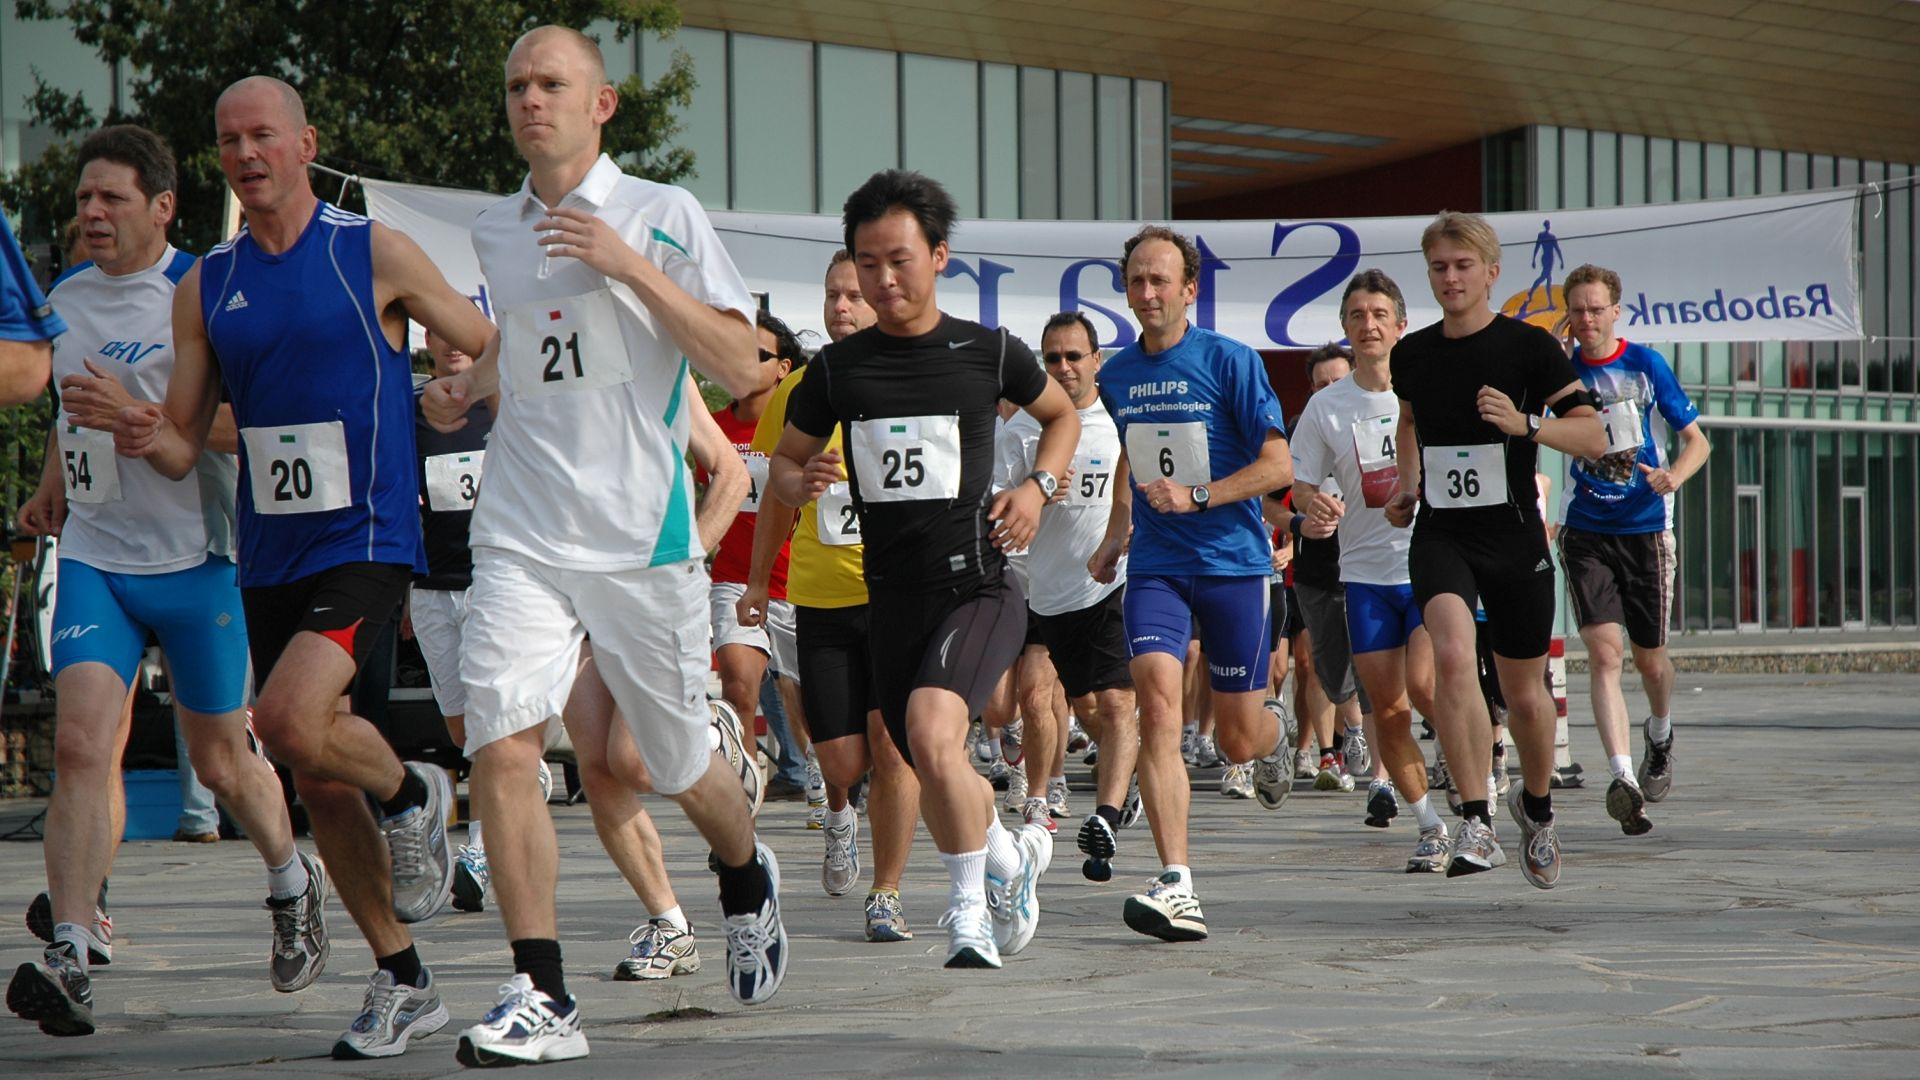 Join the Campus Run! Only one day to register